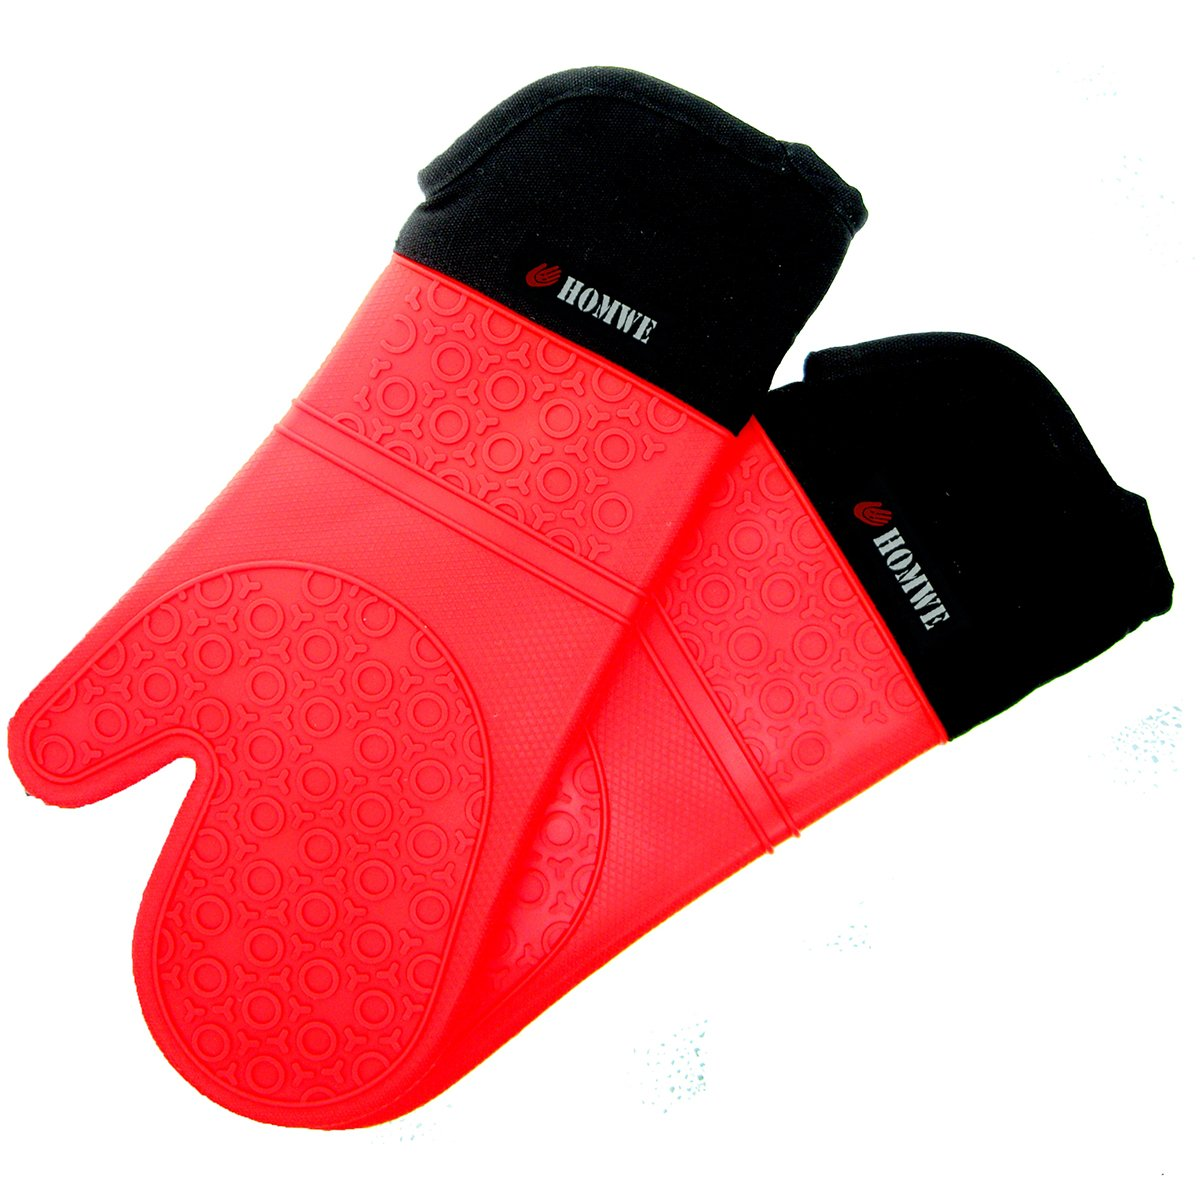 Silicone Oven Mitts - Commercial Grade, Extra Long Quilted Cotton